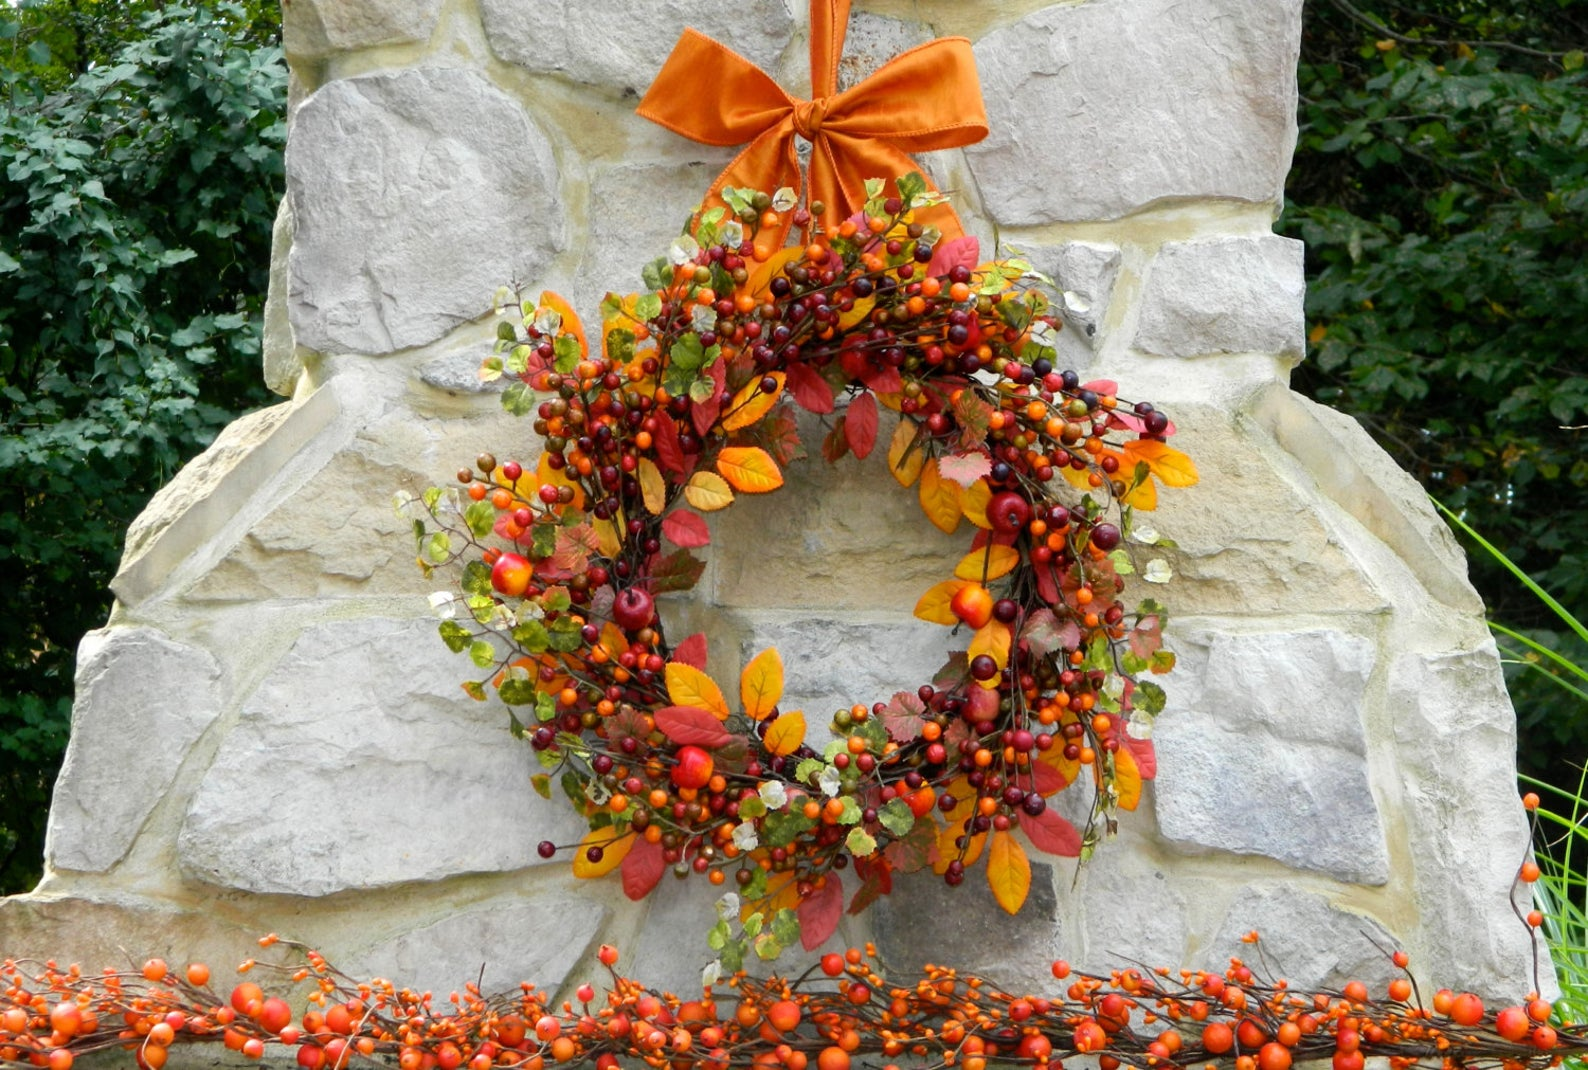 Fall Berry Wreath - Fall Foliage Wreath - Fall Leaves Wreath - Autumn Wreath